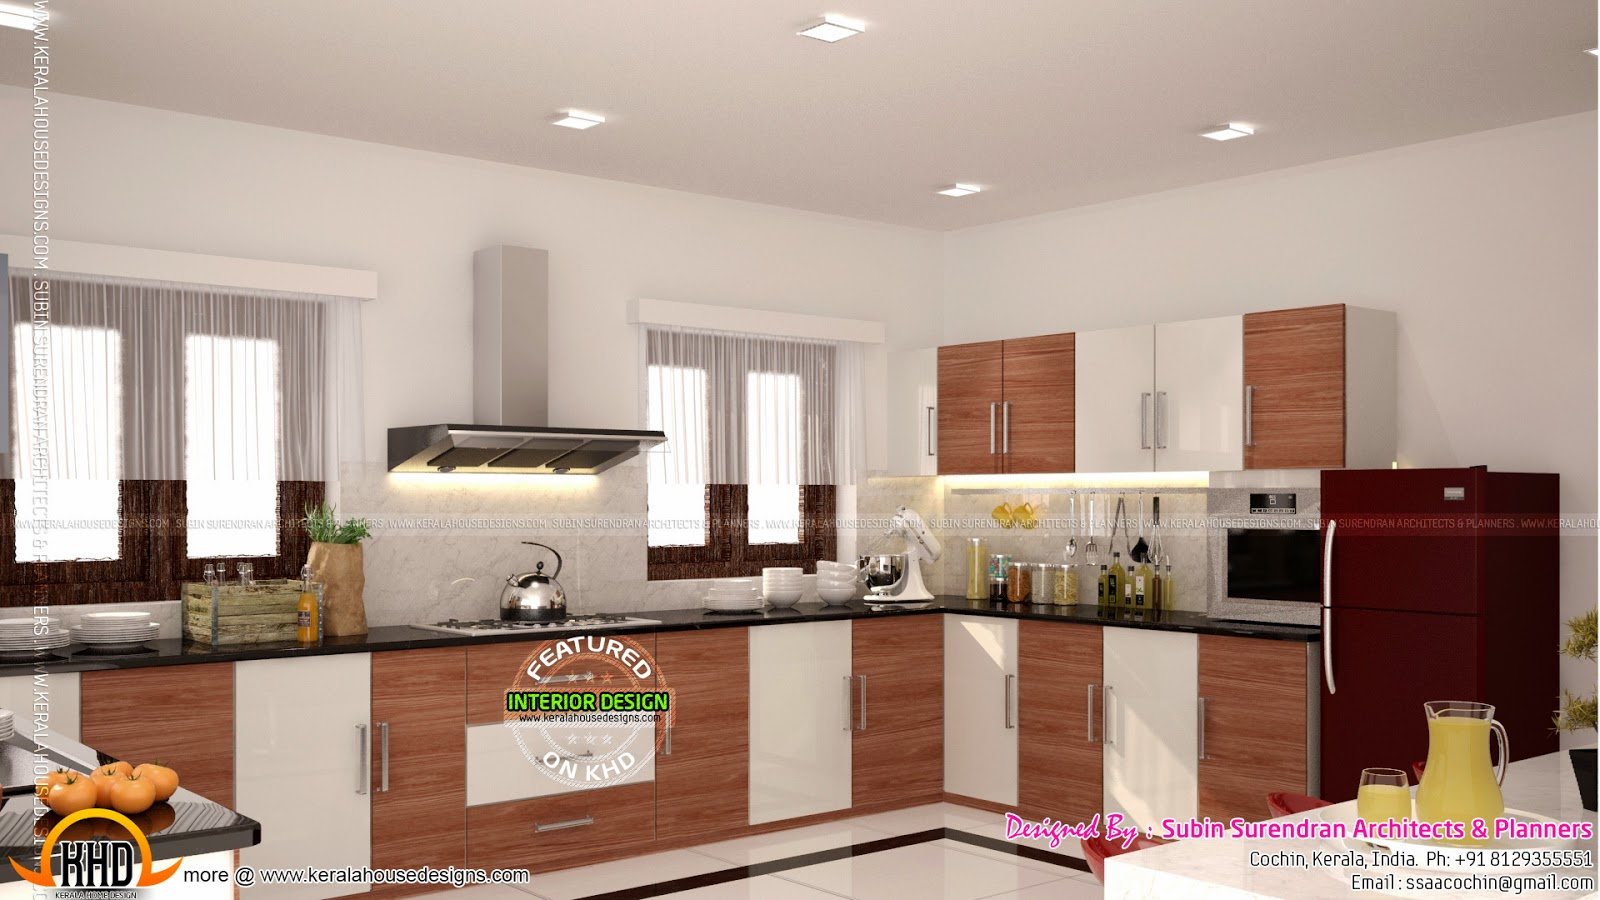 Latest modular kitchen designs in kerala luxury home design gallery with kerala  kitchen interior designKerala Kitchen Interior Design  Interior Design Kerala With Kerala  . Latest Kitchen Designs In Kerala. Home Design Ideas